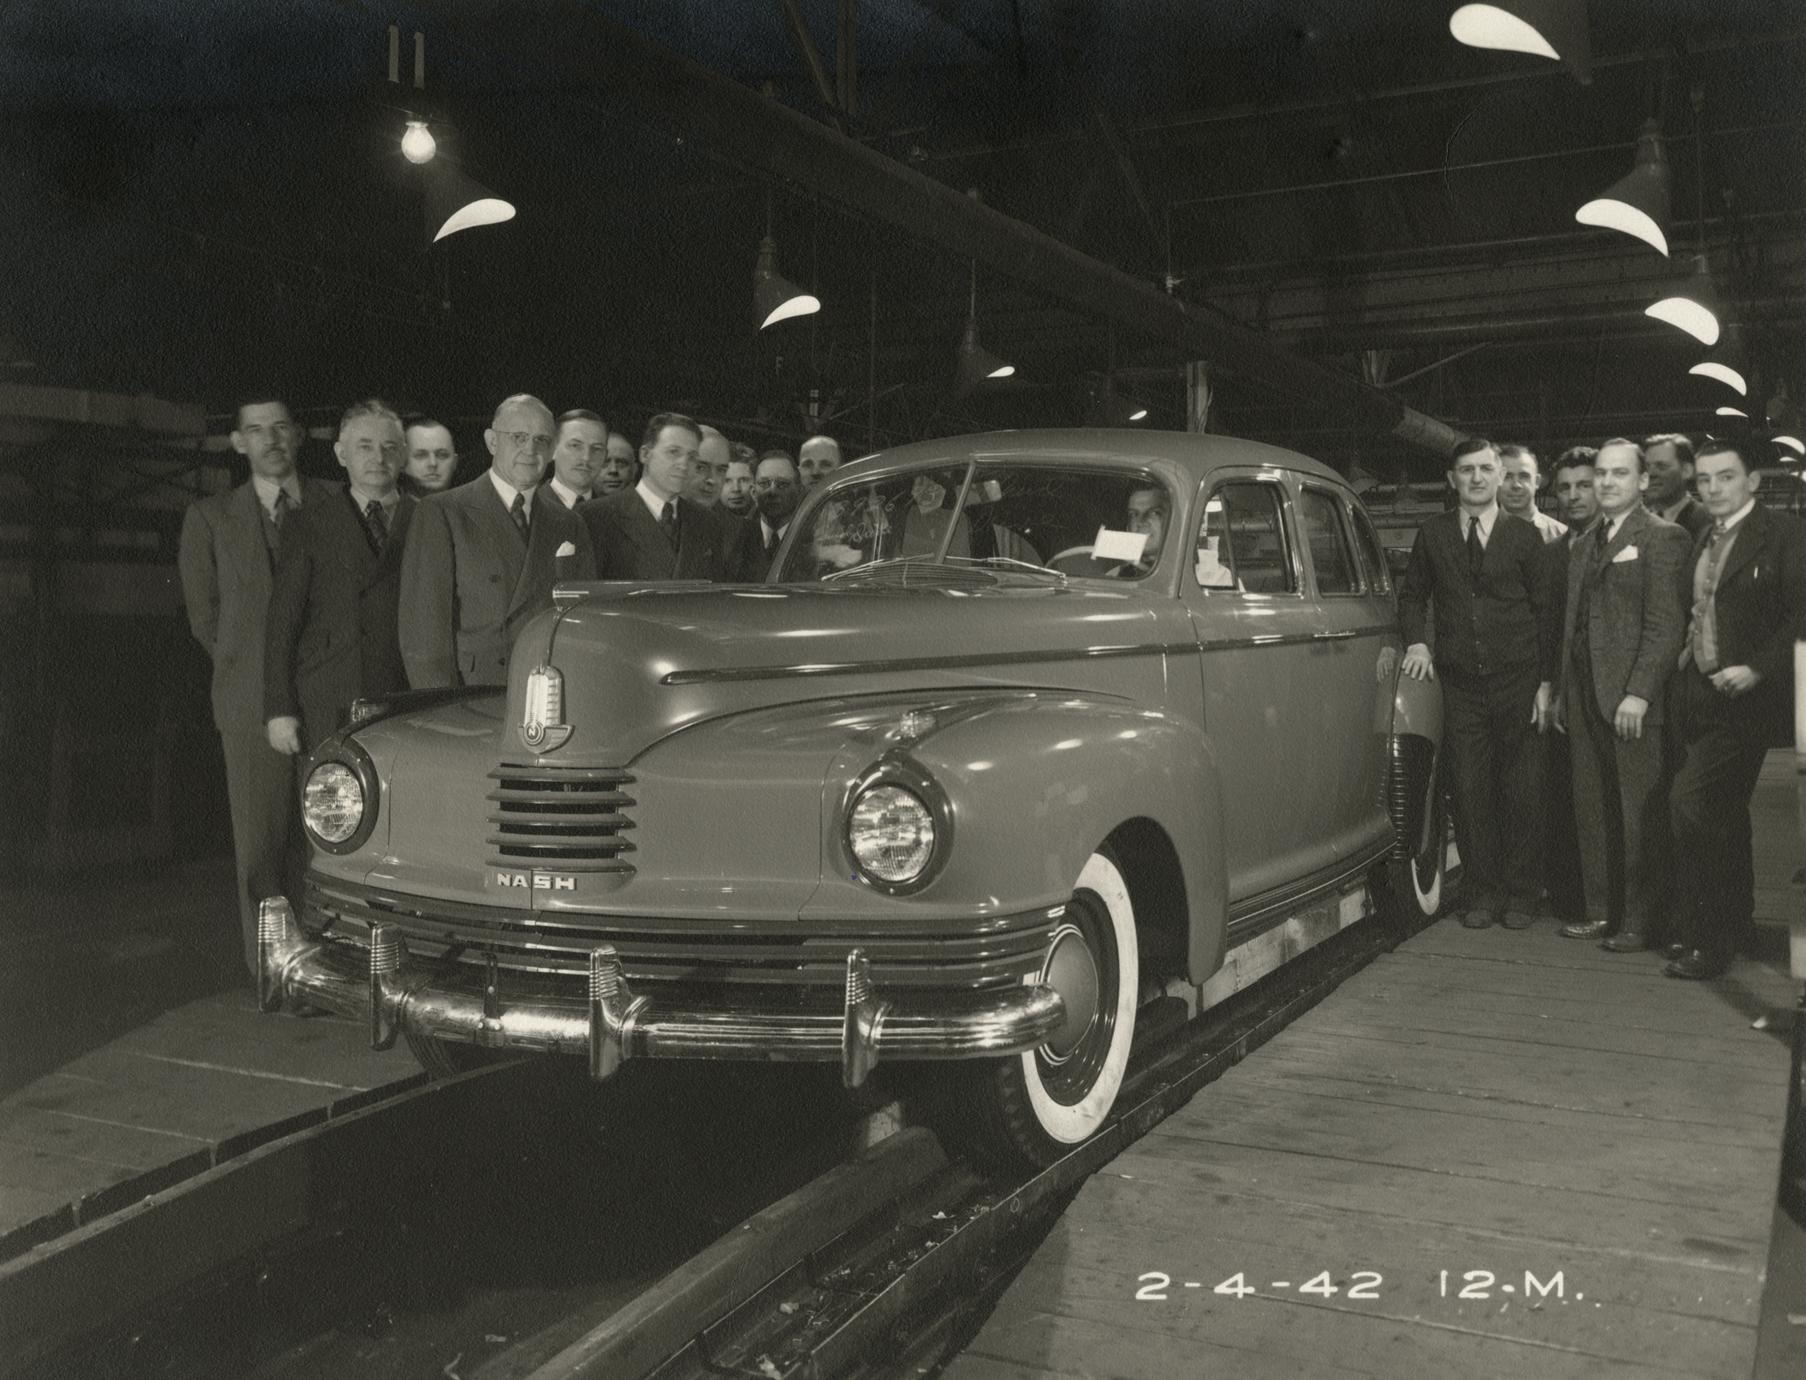 """The last """"civilian"""" Nash comes off the assembly line before World War II manufacturing begins"""